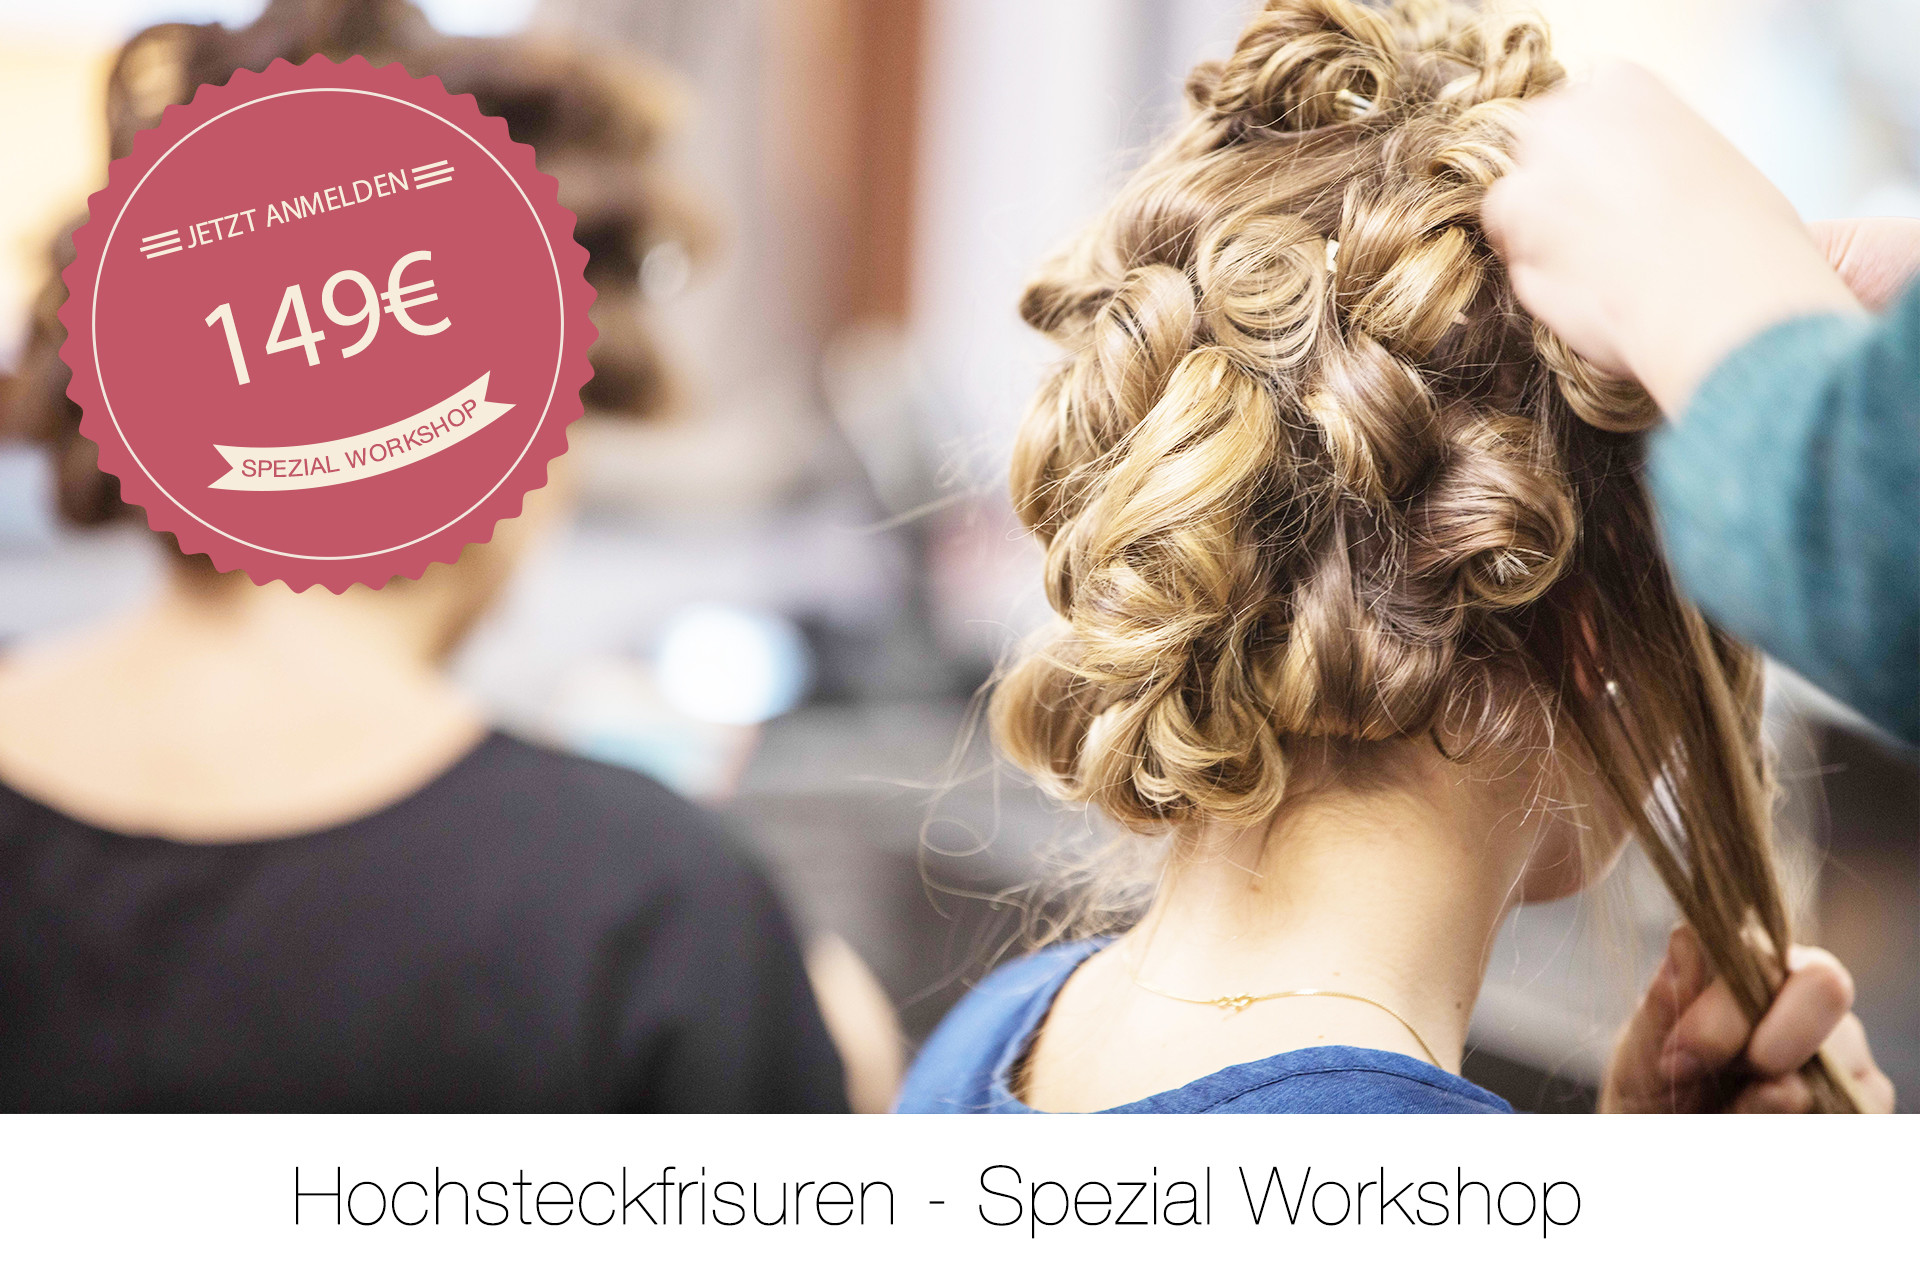 Hochsteckfrisuren Spezial Workshop